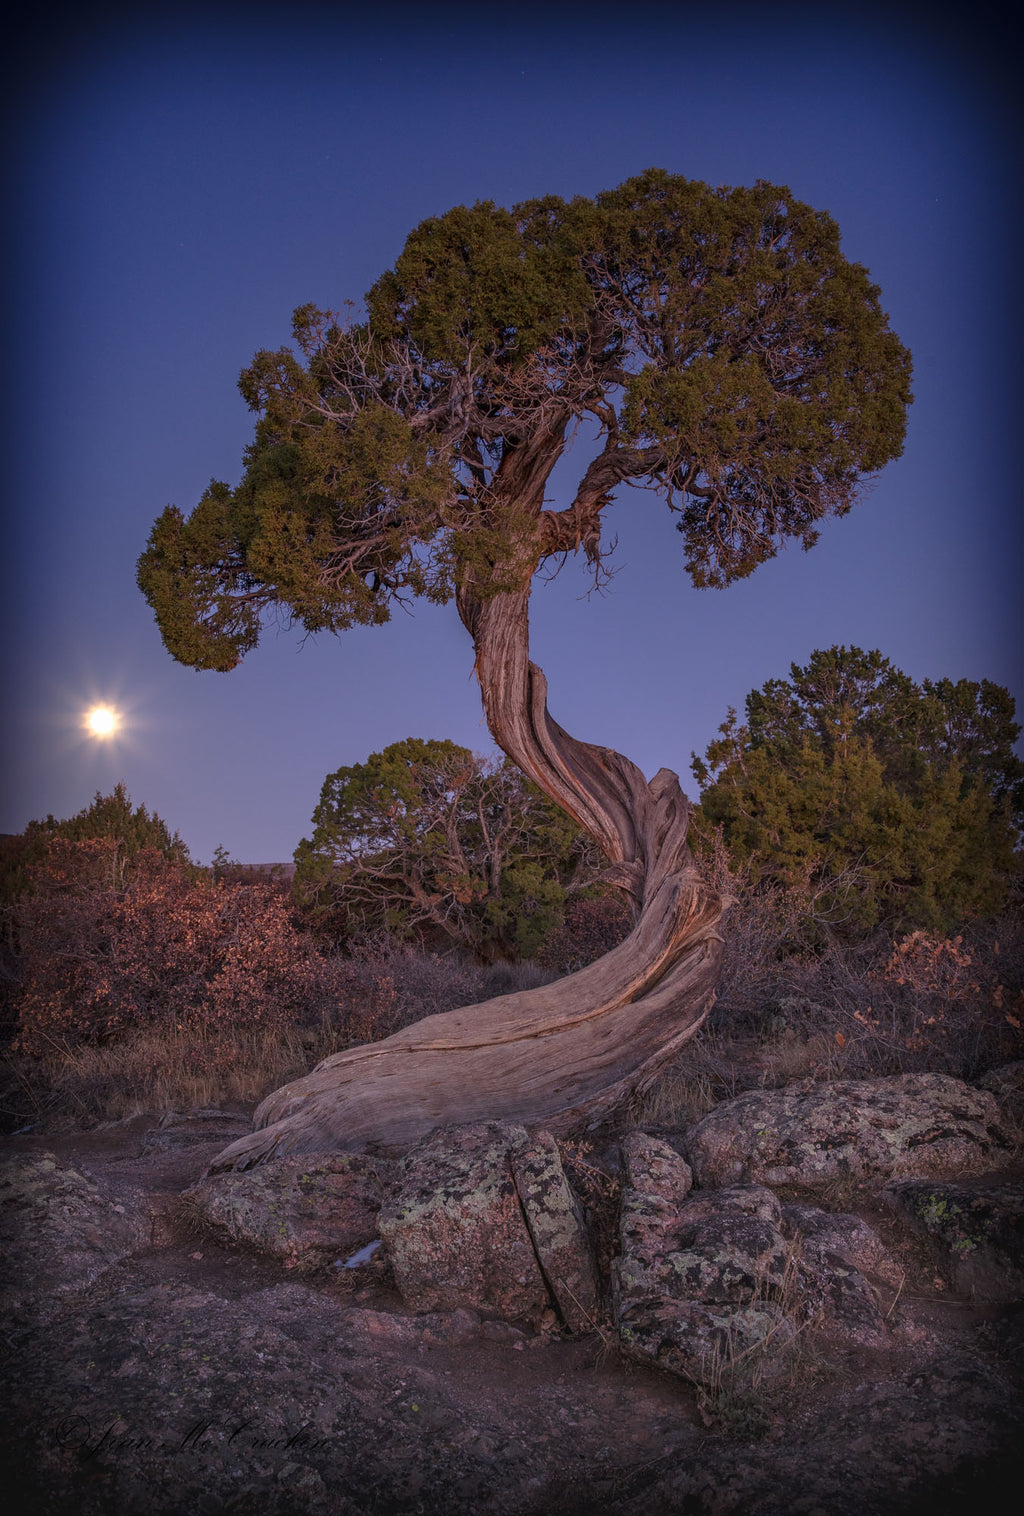 Juniper Tree in the Full Moon, Black Canyon of the Gunnison